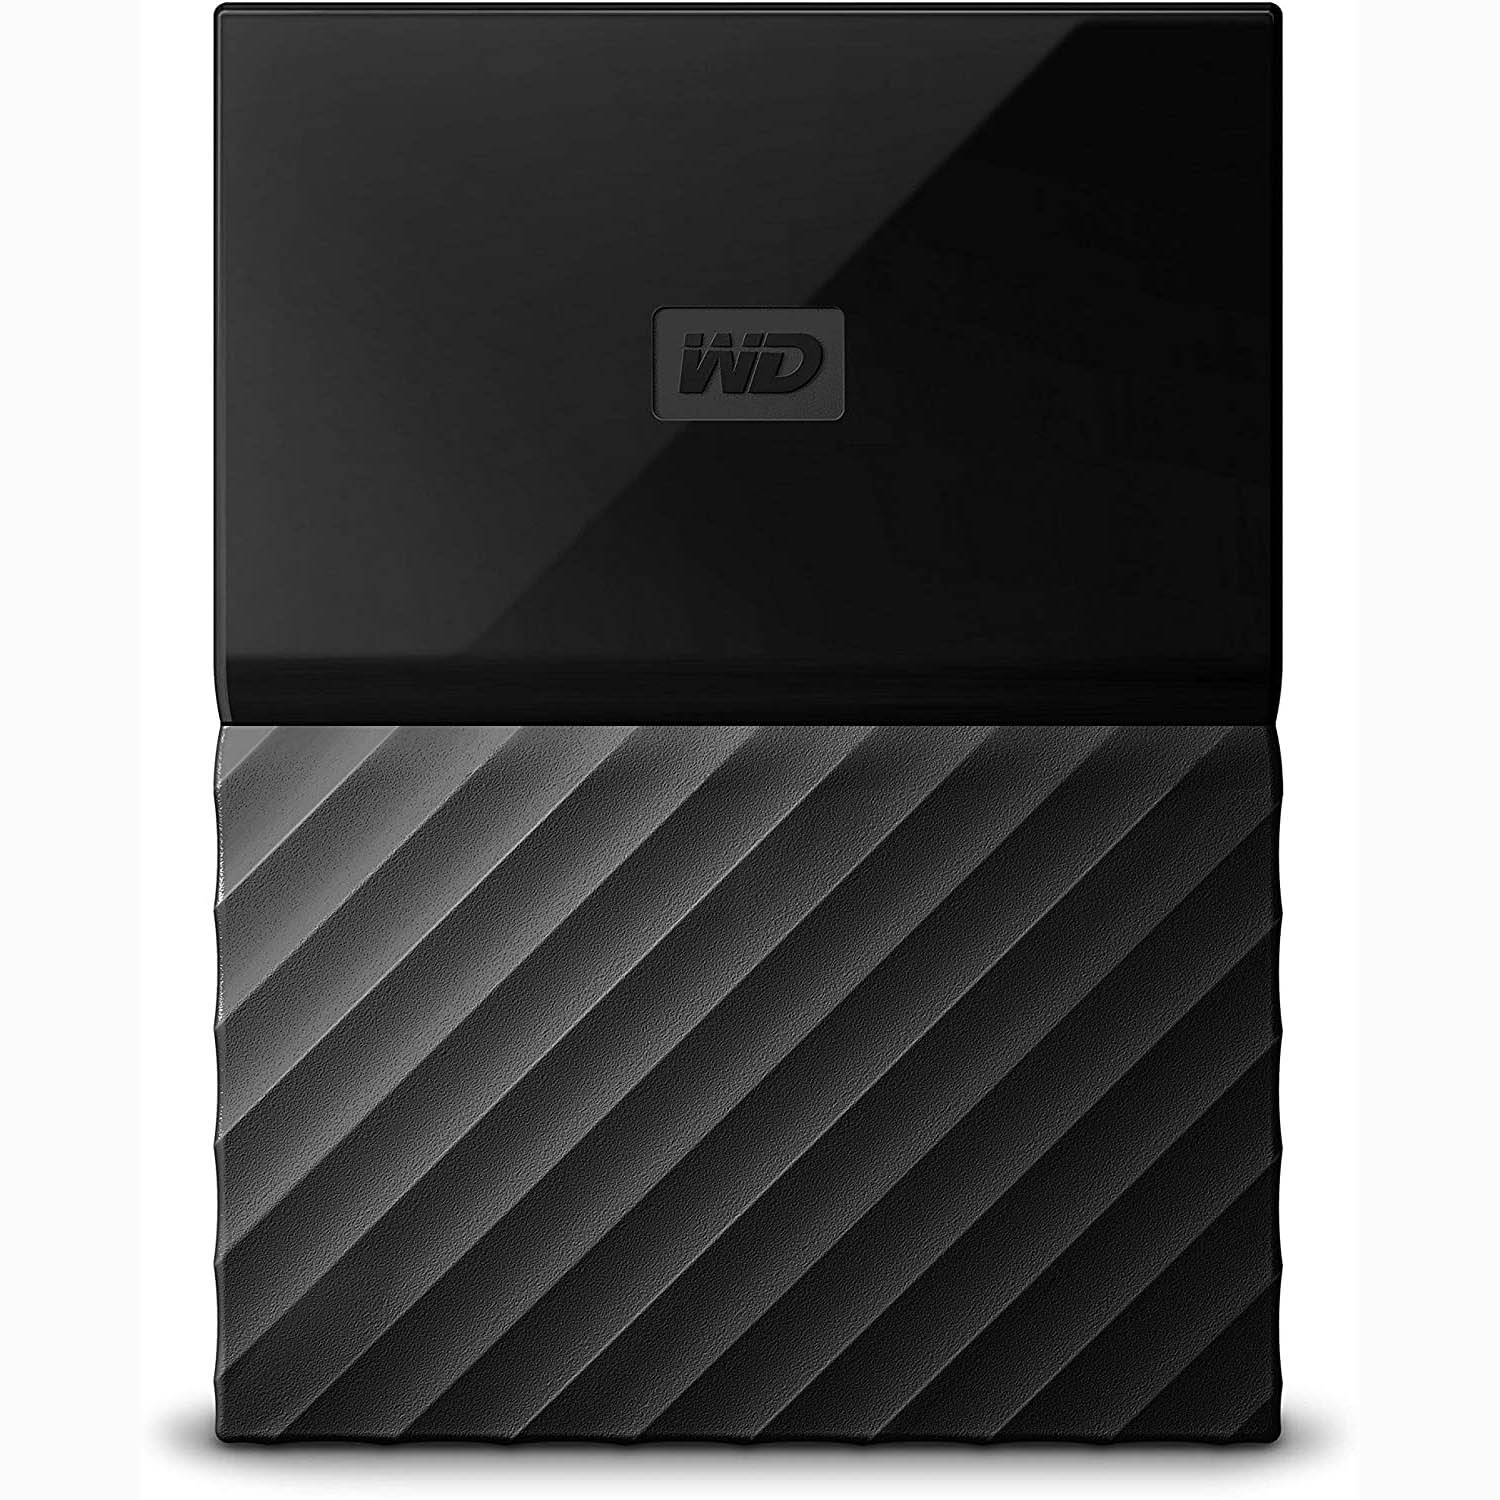 CASE EXTERNAL SATA 2.5 FOR HD NOTEBOOK WD MY PASSPORT USB3.0 بوكس هارد ,Other Used Items